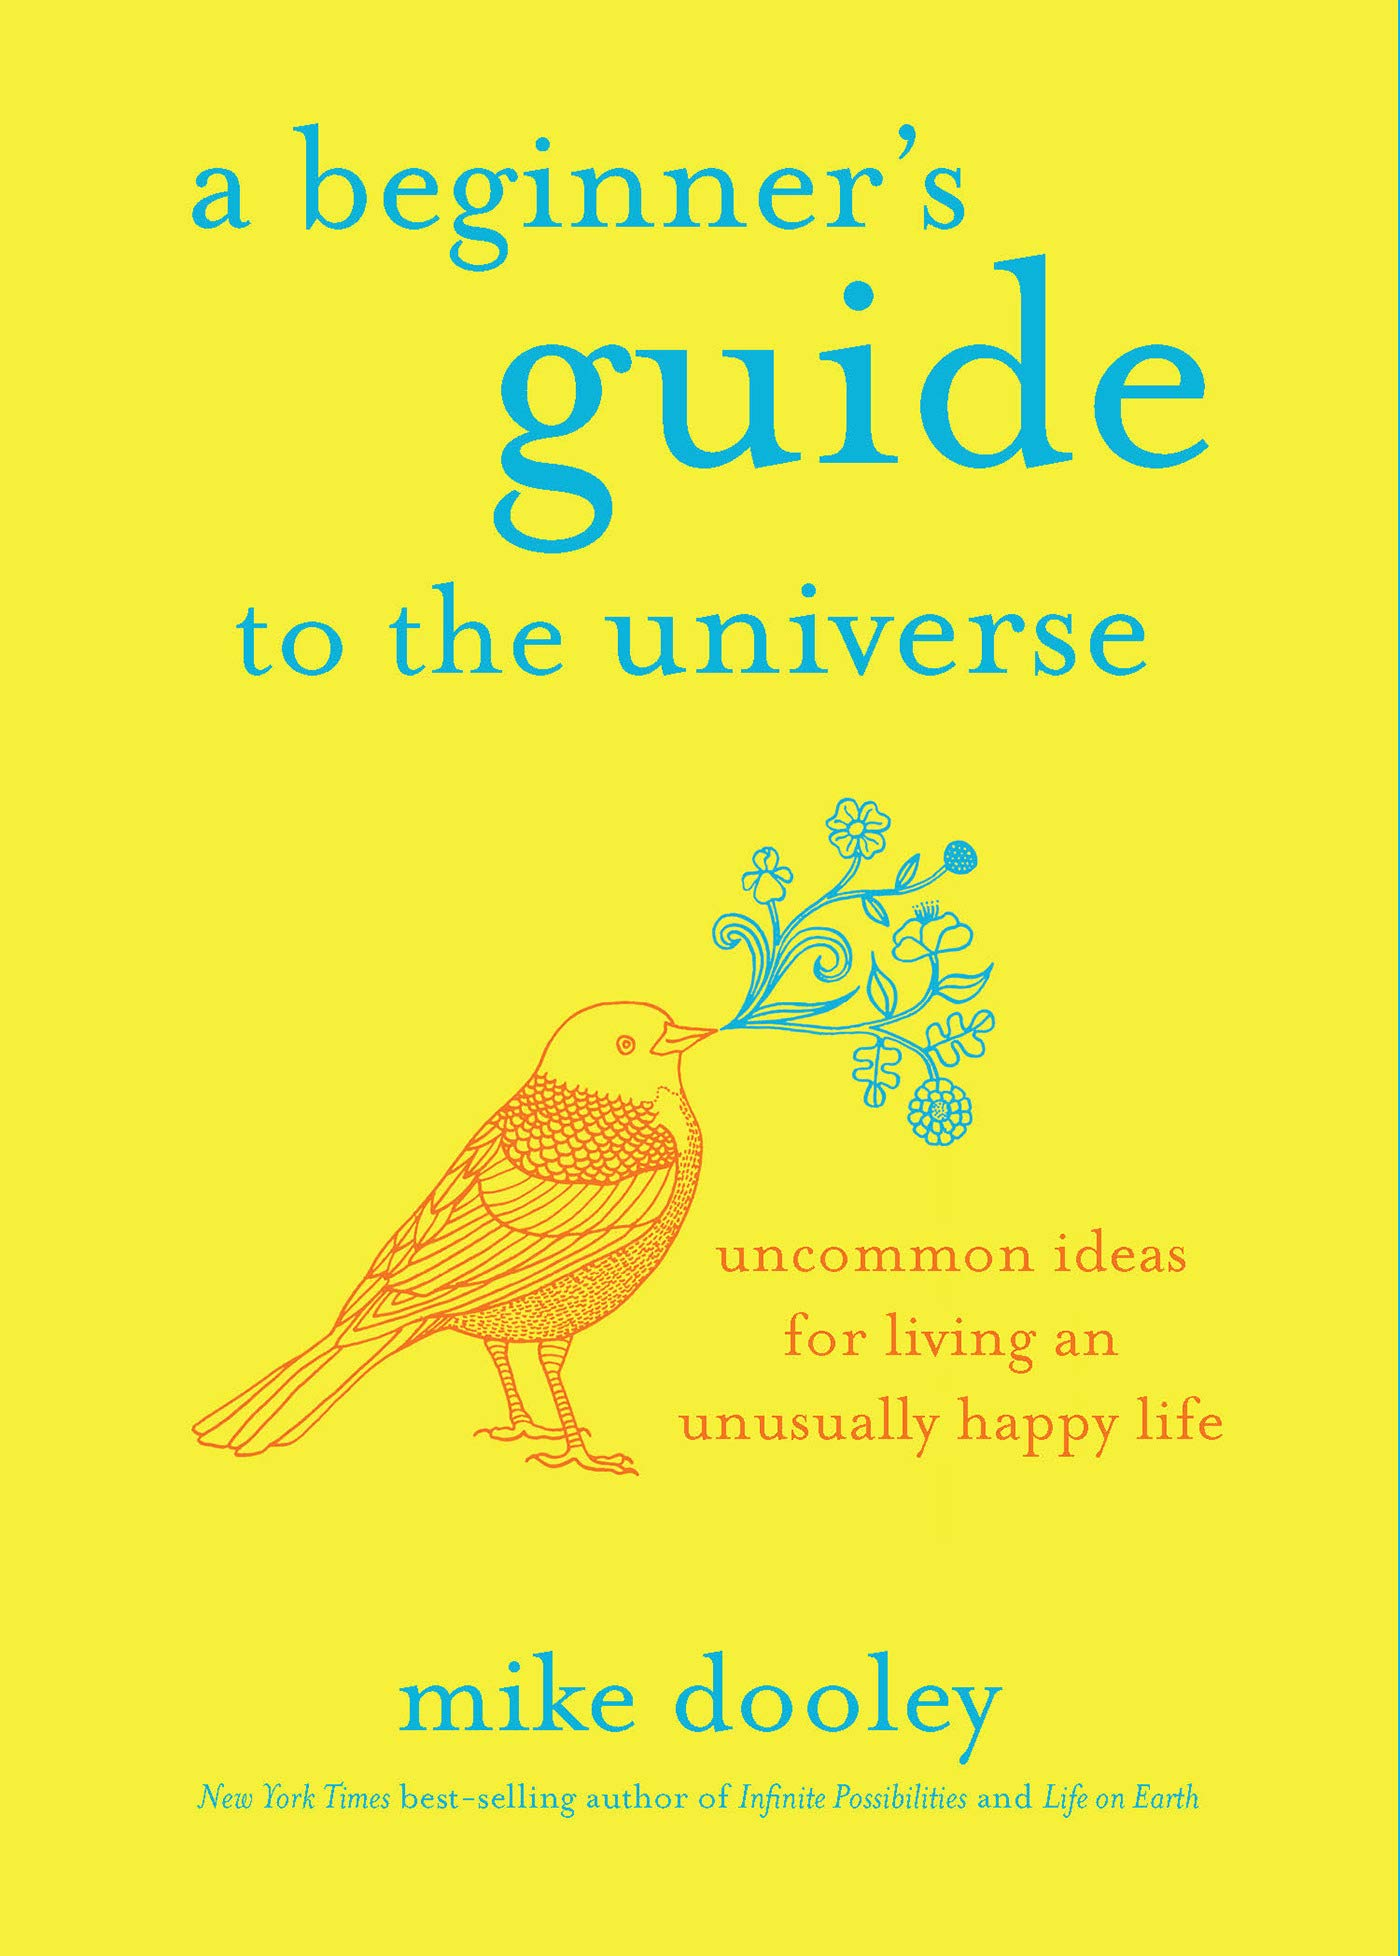 Image OfA Beginner's Guide To The Universe: Uncommon Ideas For Living An Unusually Happy Life